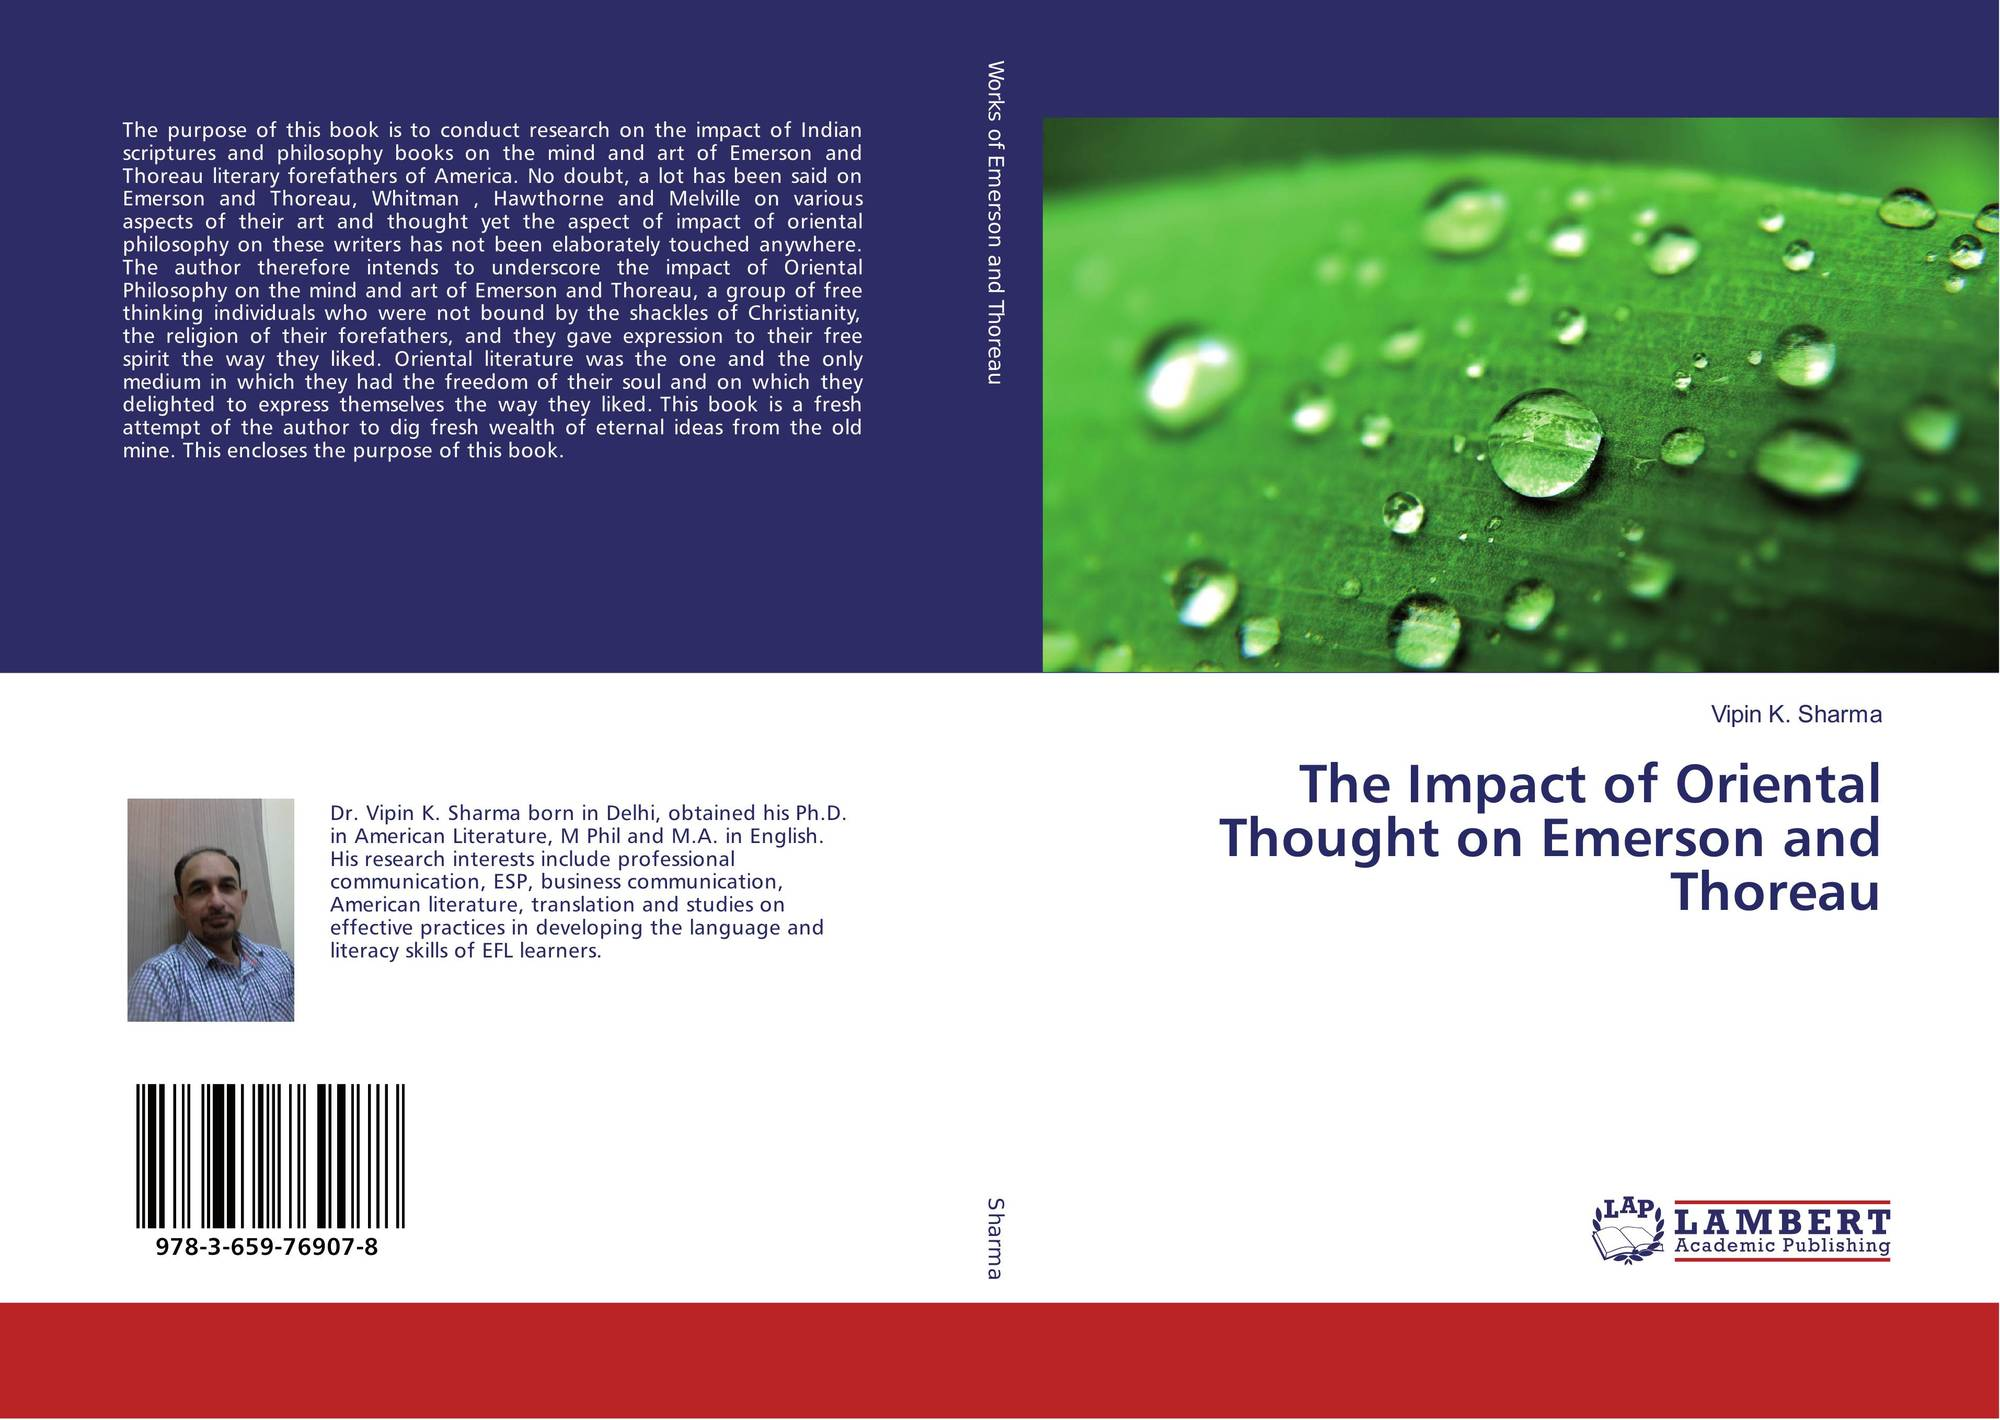 indian thought in emerson thoreau and whitman essay